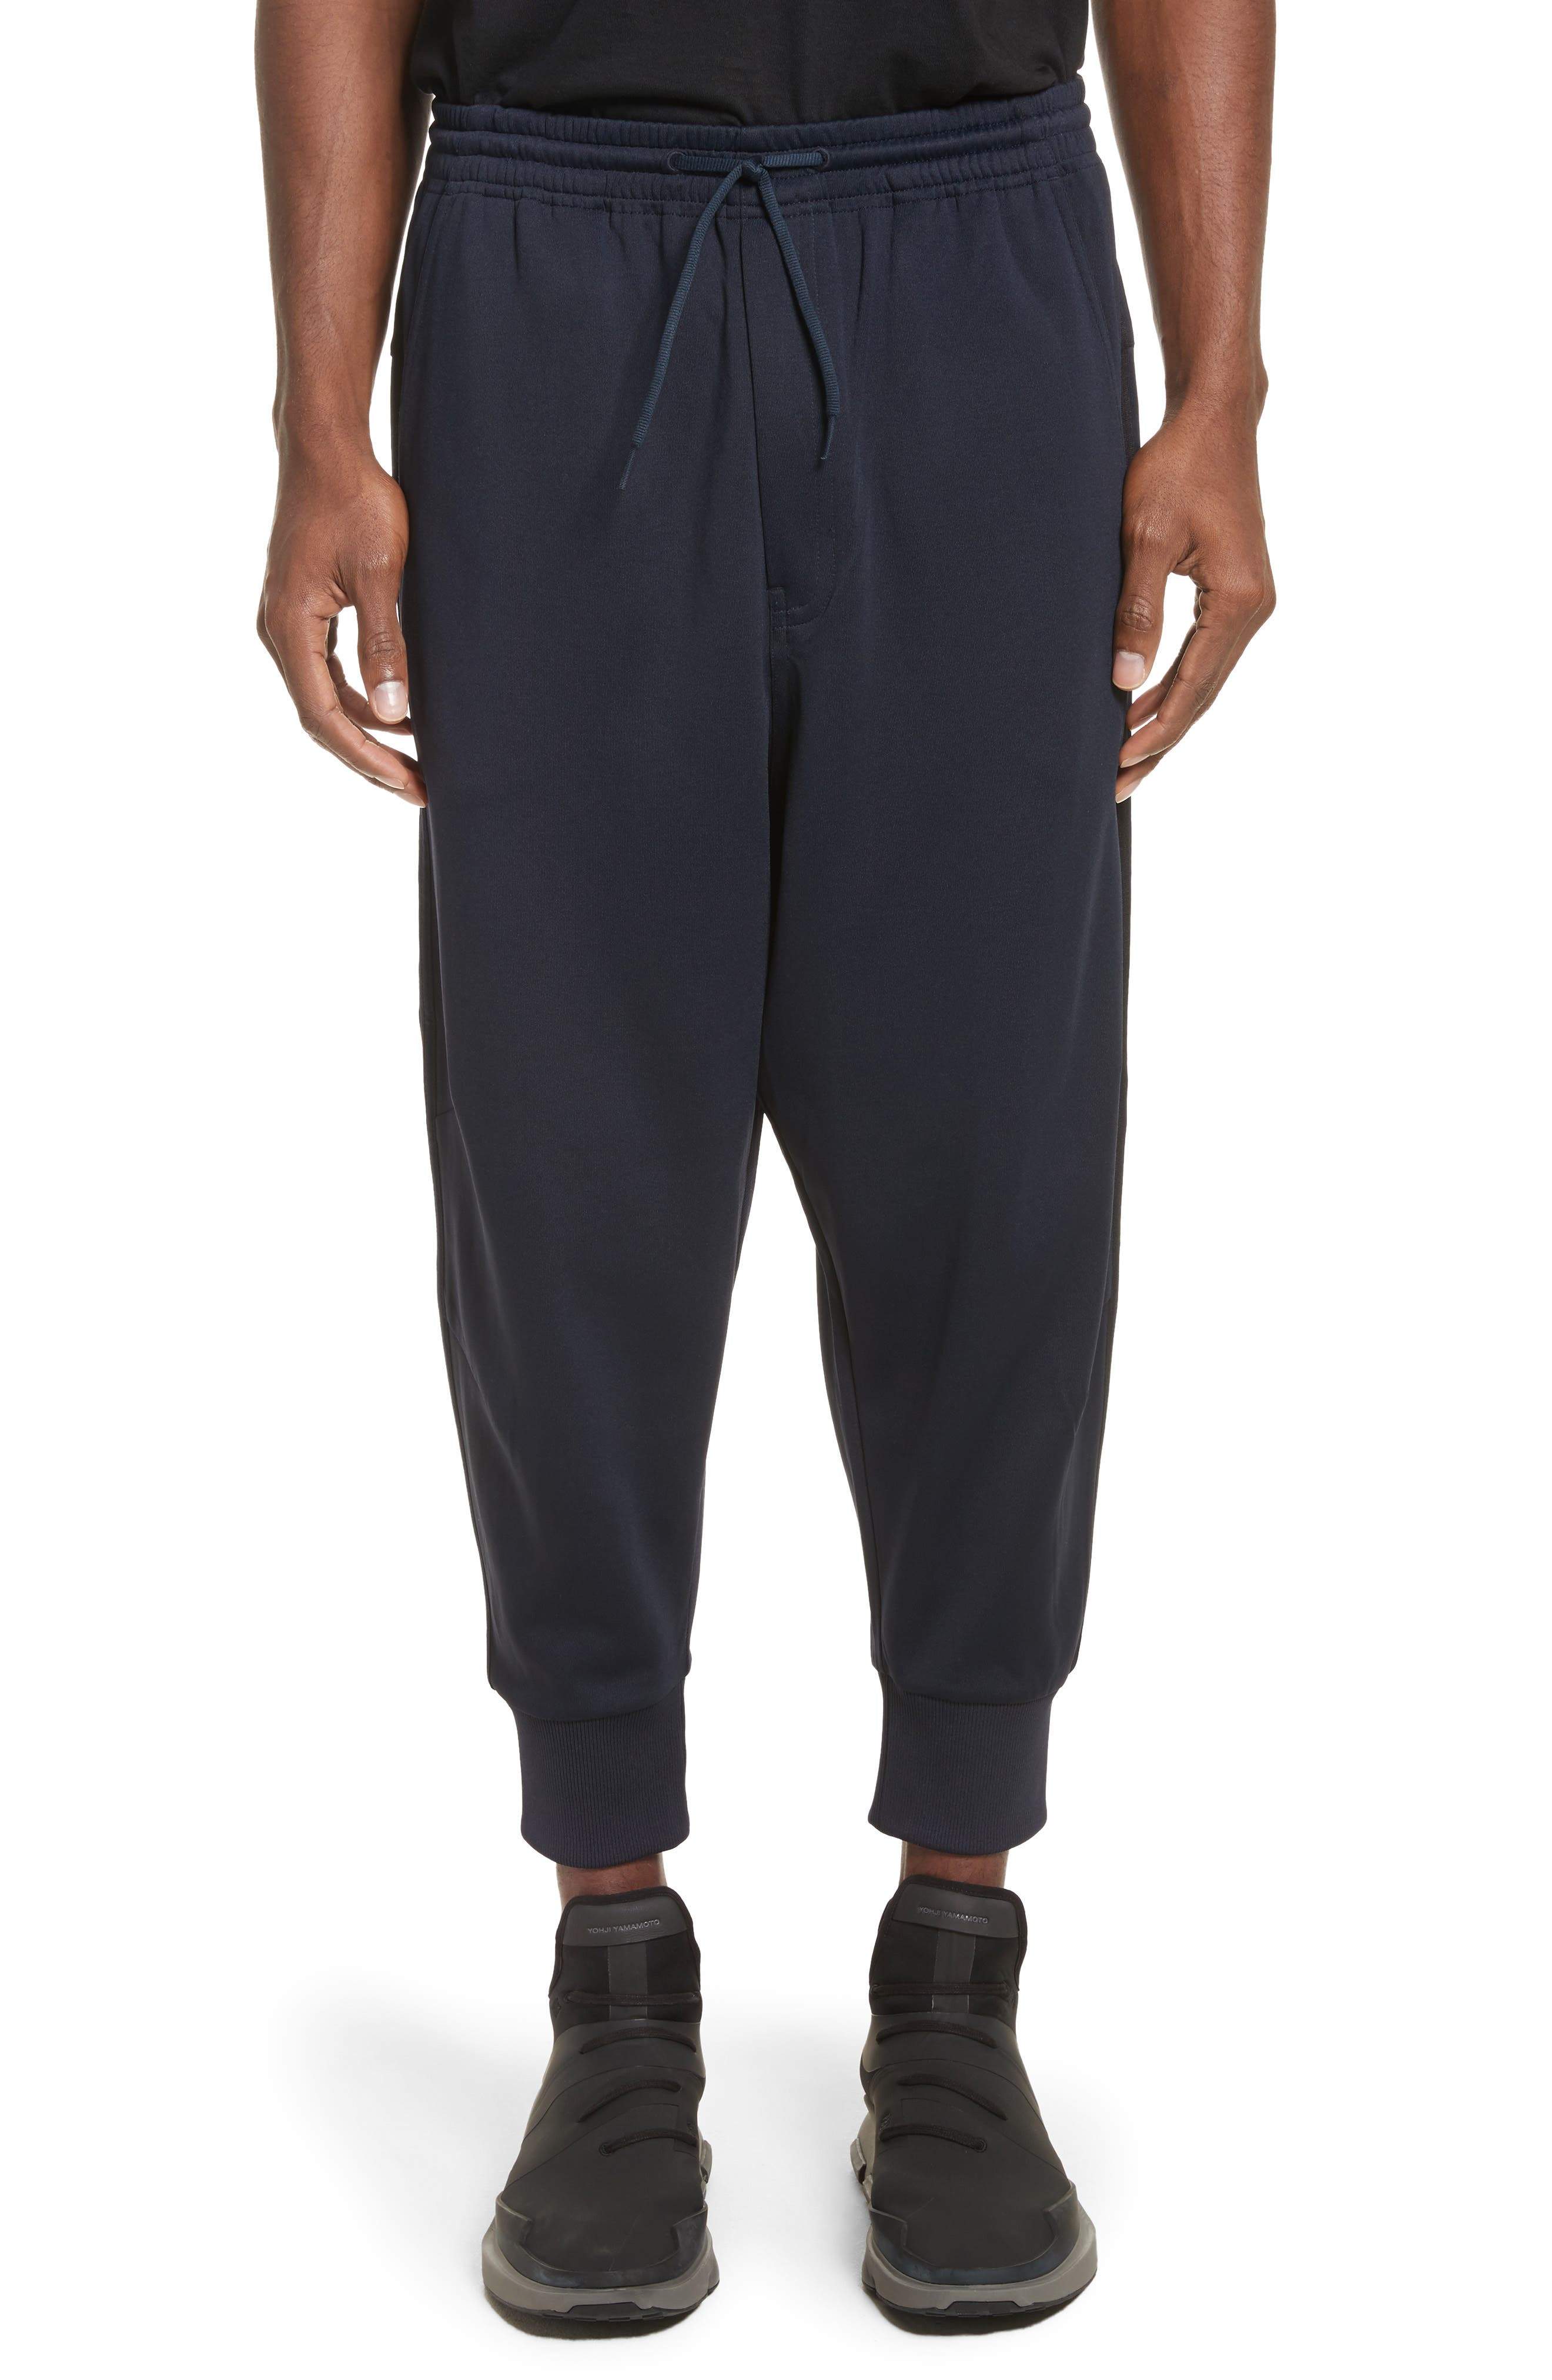 x adidas Cropped Track Pants,                             Main thumbnail 1, color,